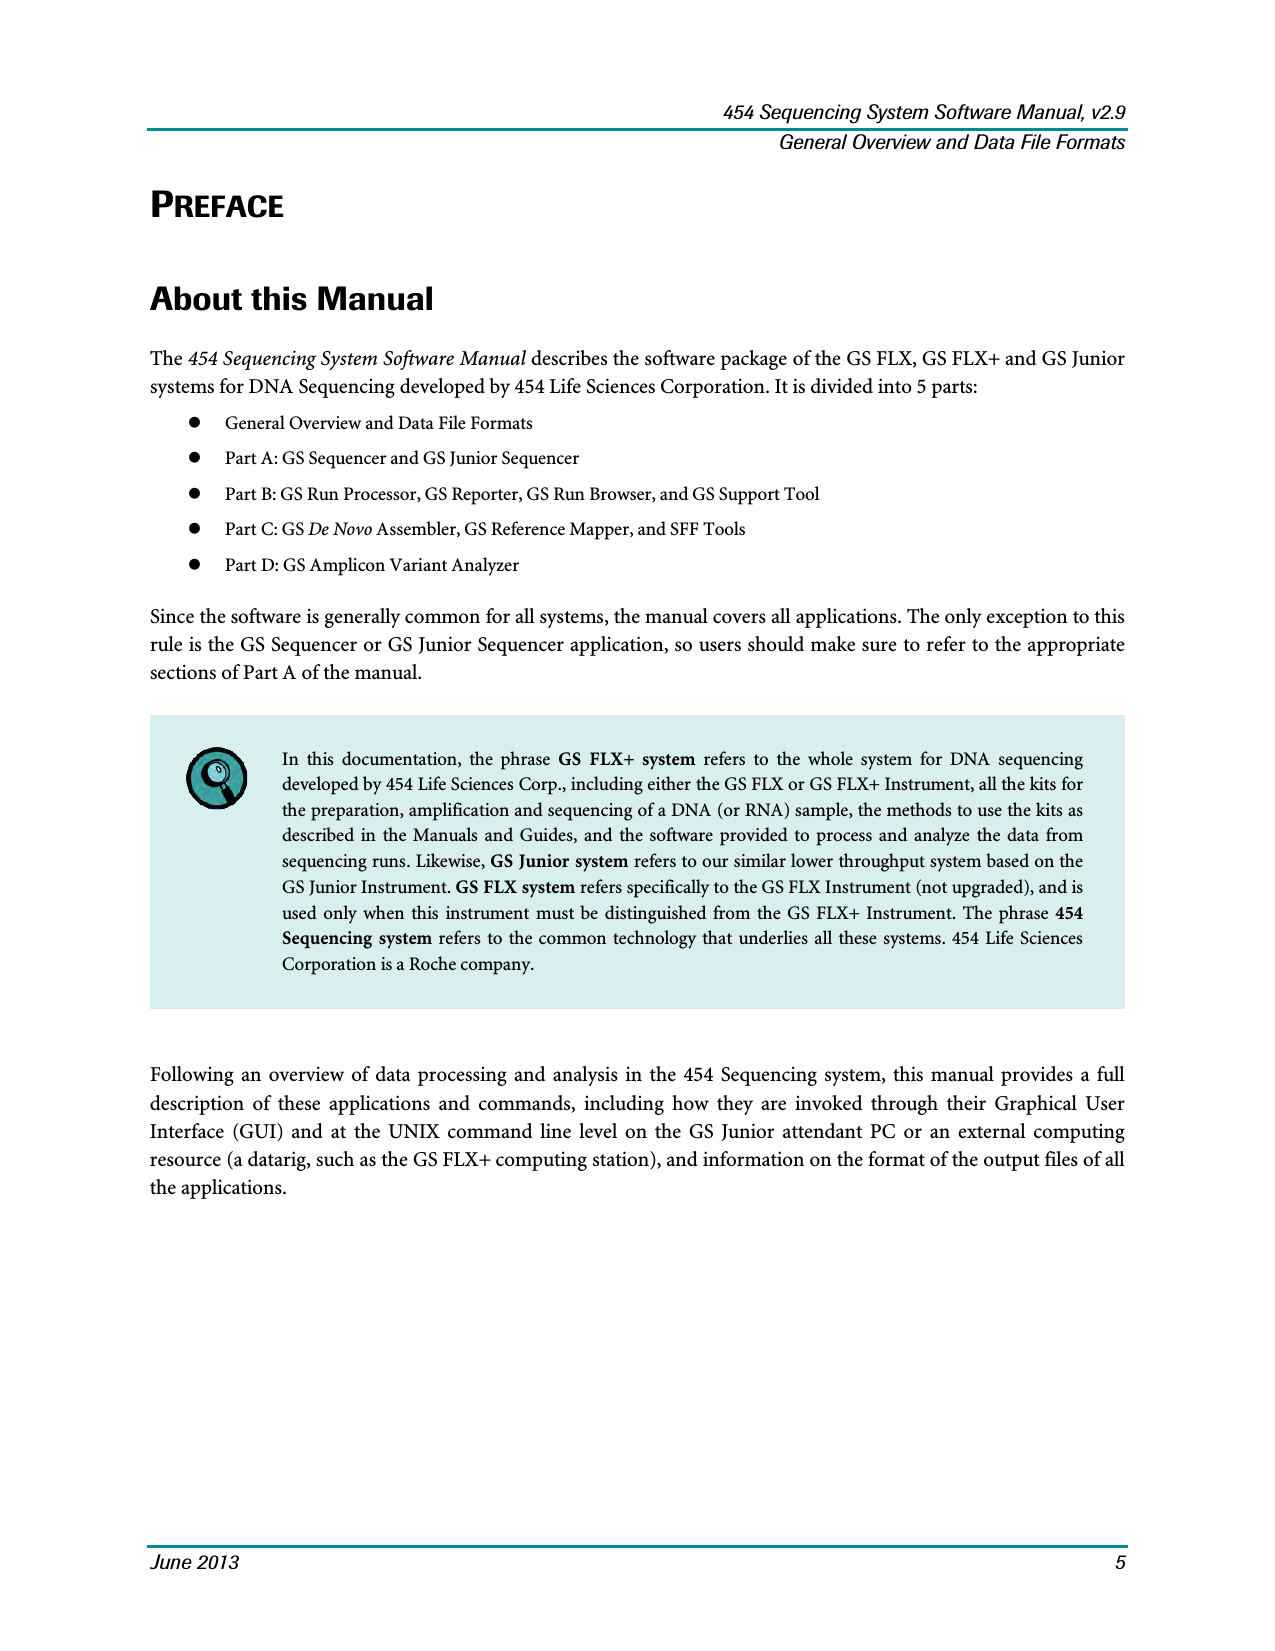 USM-00058.09_454SeqSys_SWManual-v2.9_Overview-05.png